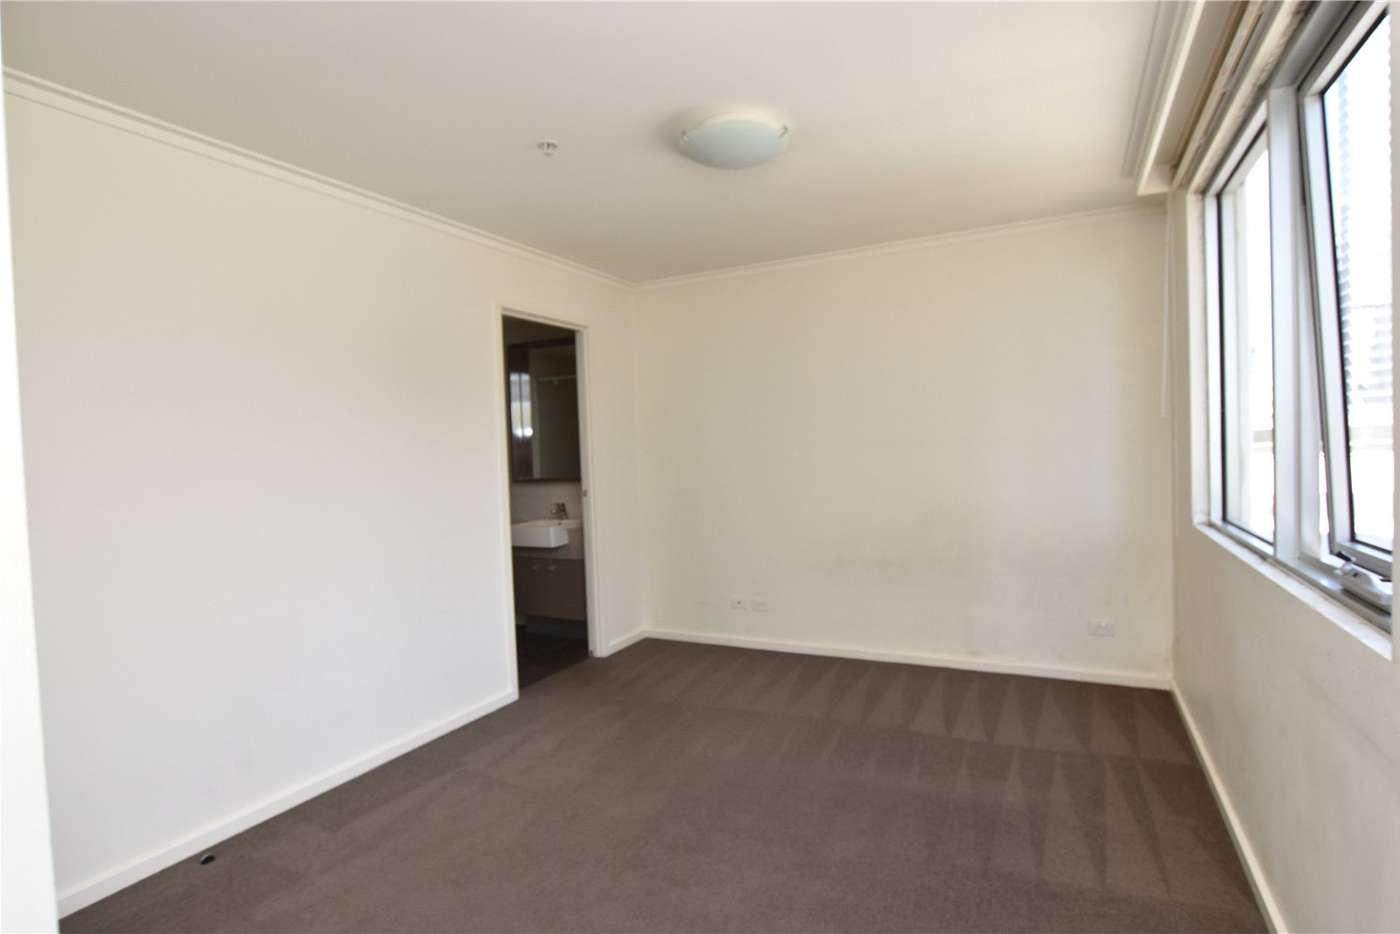 Sixth view of Homely apartment listing, 404/58 Jeffcott Street, West Melbourne VIC 3003